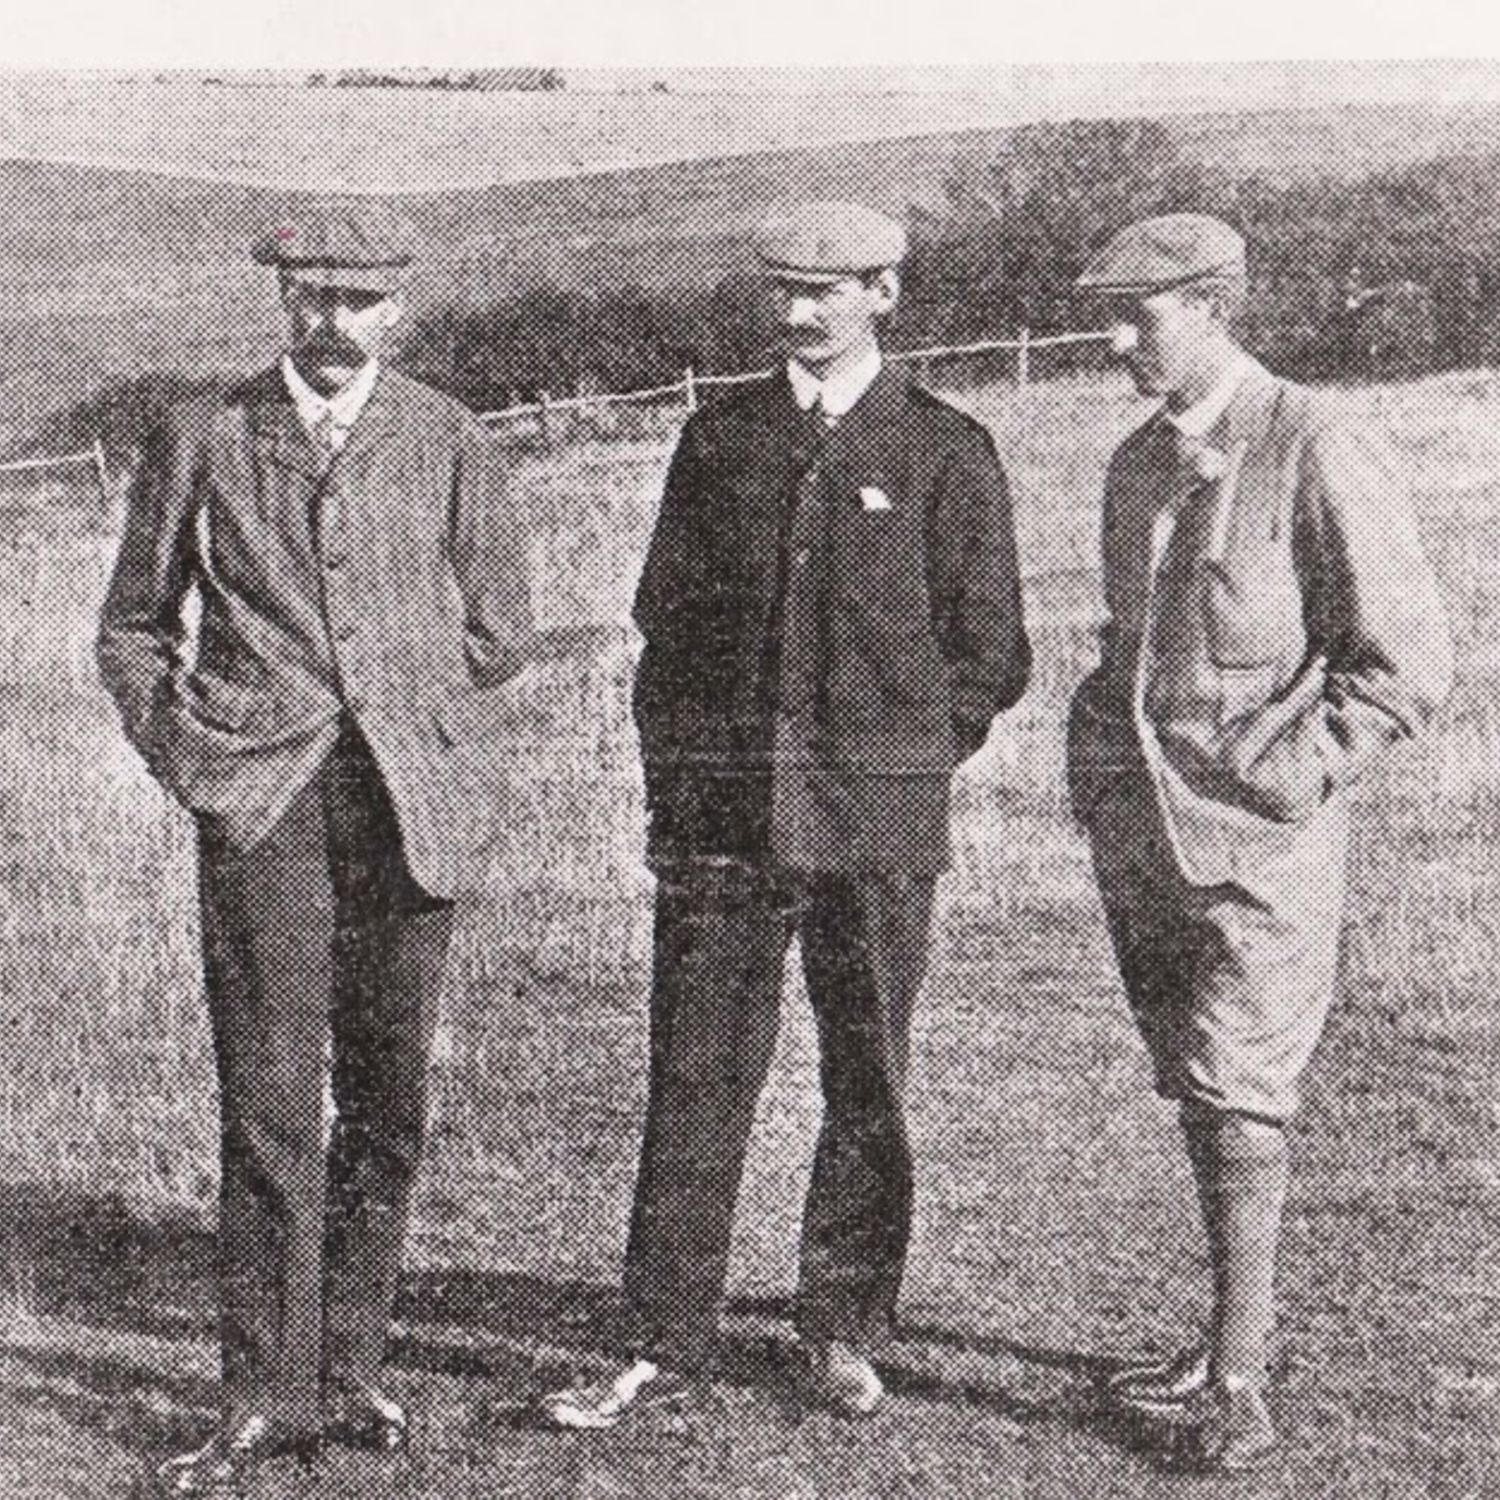 James Braid, the Open Champion, Douglas McEwan